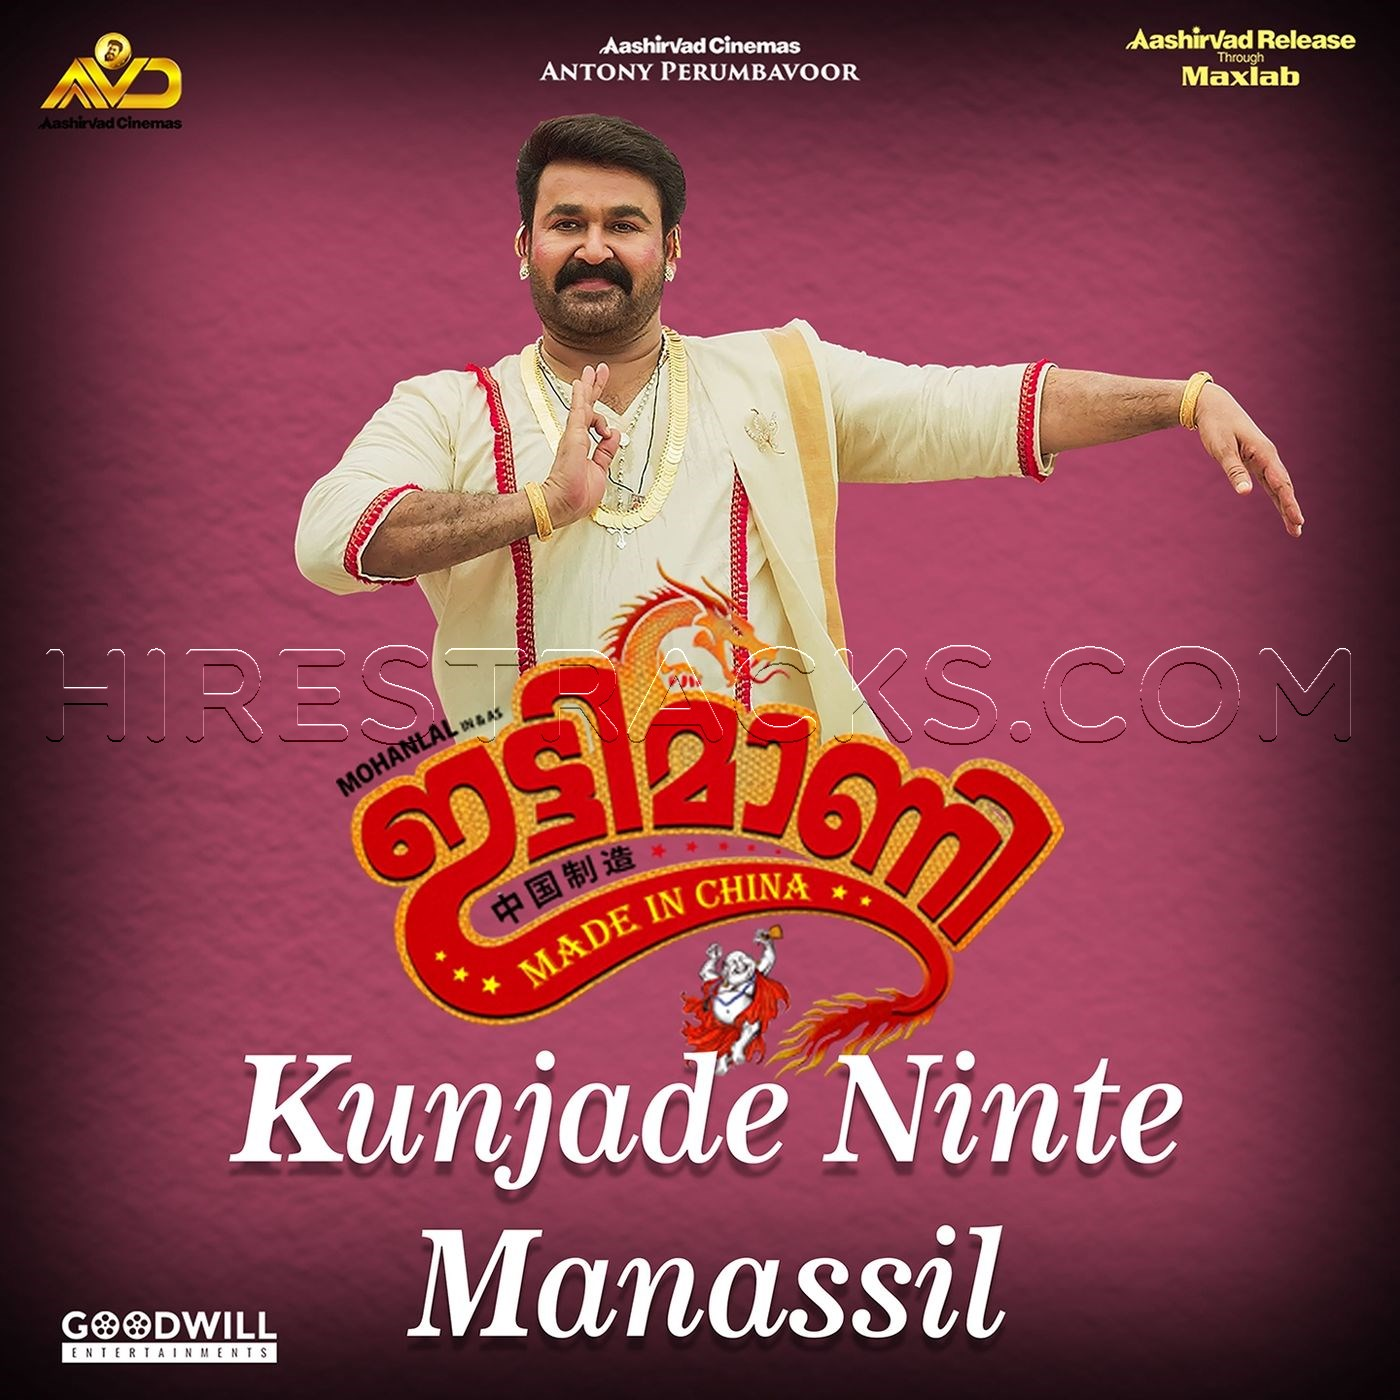 Kunjade Ninte Manassil (From Ittymaani Made in China) (2019) (4 Musics) (Goodwill Entertainments)